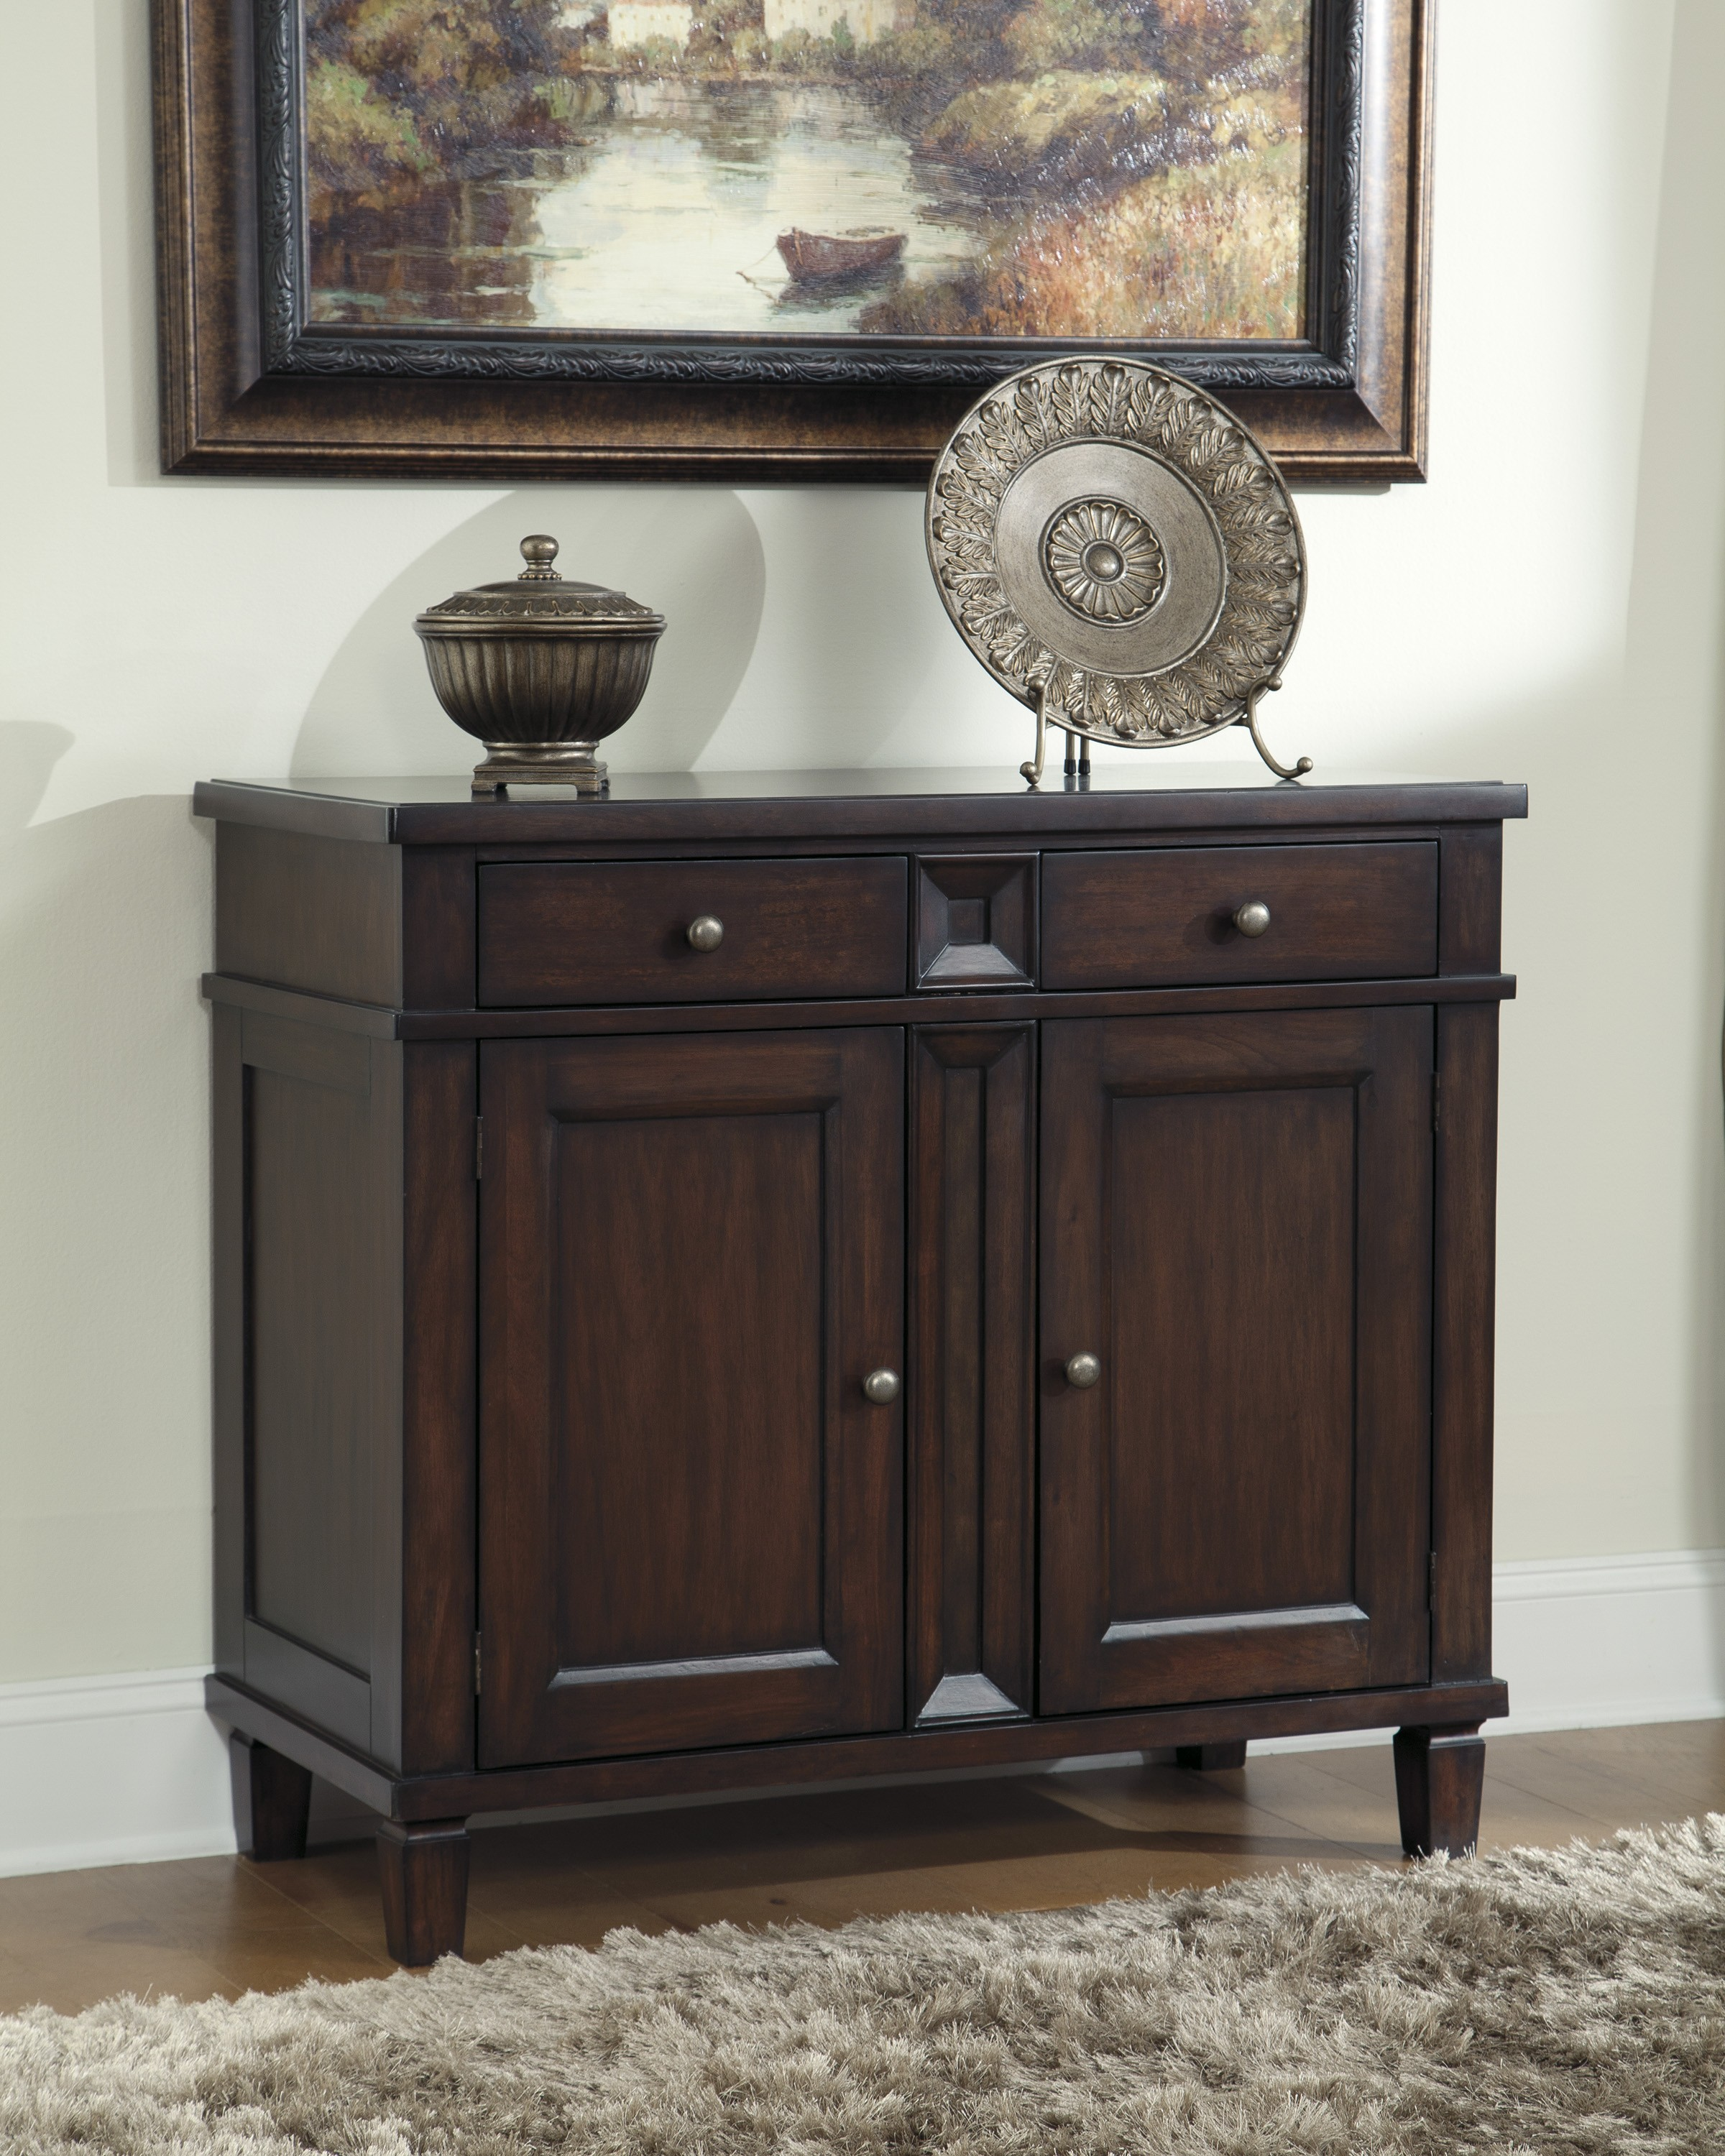 furniture remarkable colors accent chest for home entryway chests and cabinets small decorative tables pottery barn square coffee table wall mounted drop leaf end sets semi circle